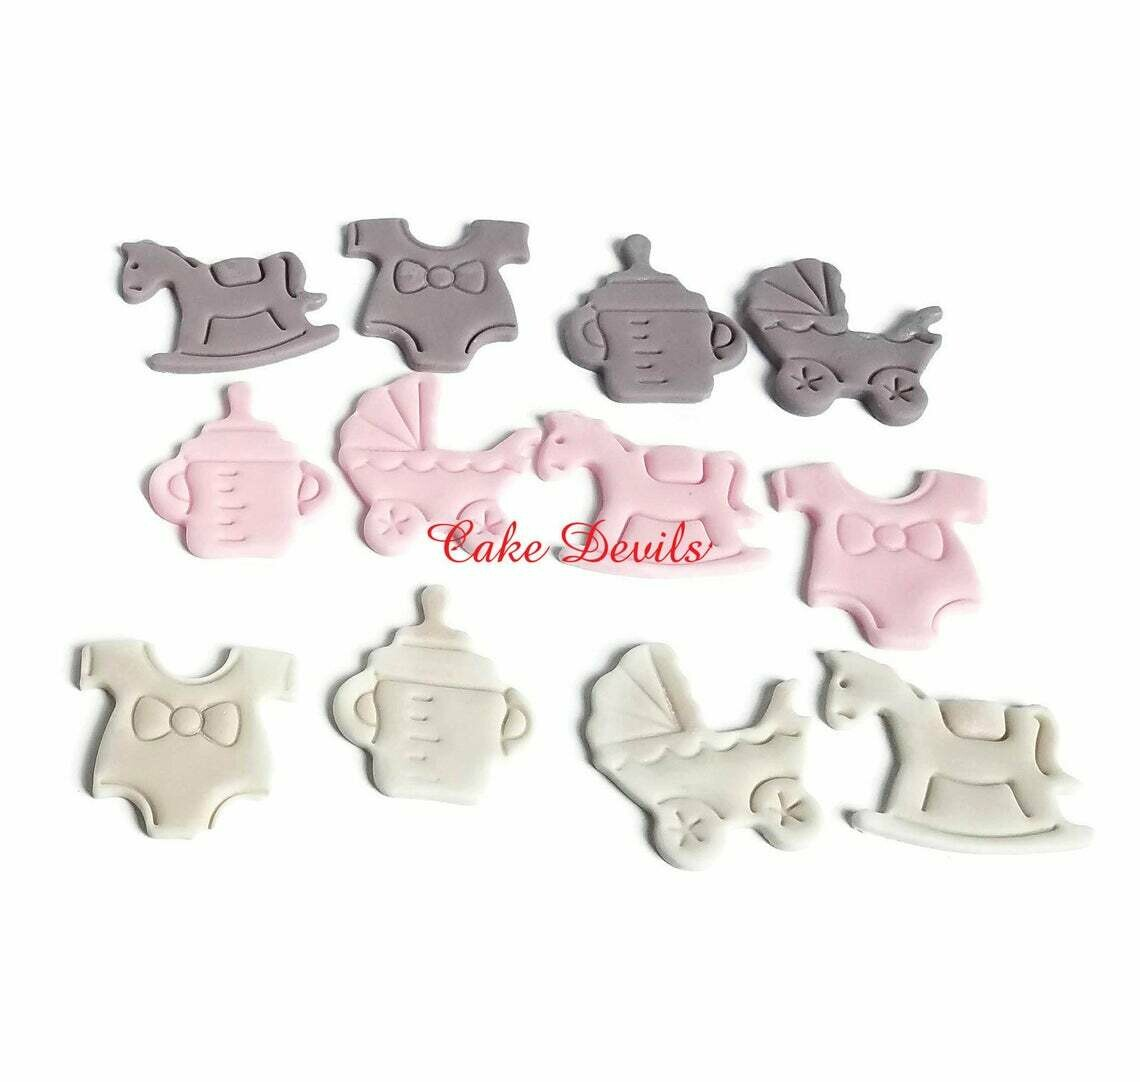 Fondant Baby Shower Cupcake Toppers of bottle, onesie, rocking horse, and stroller